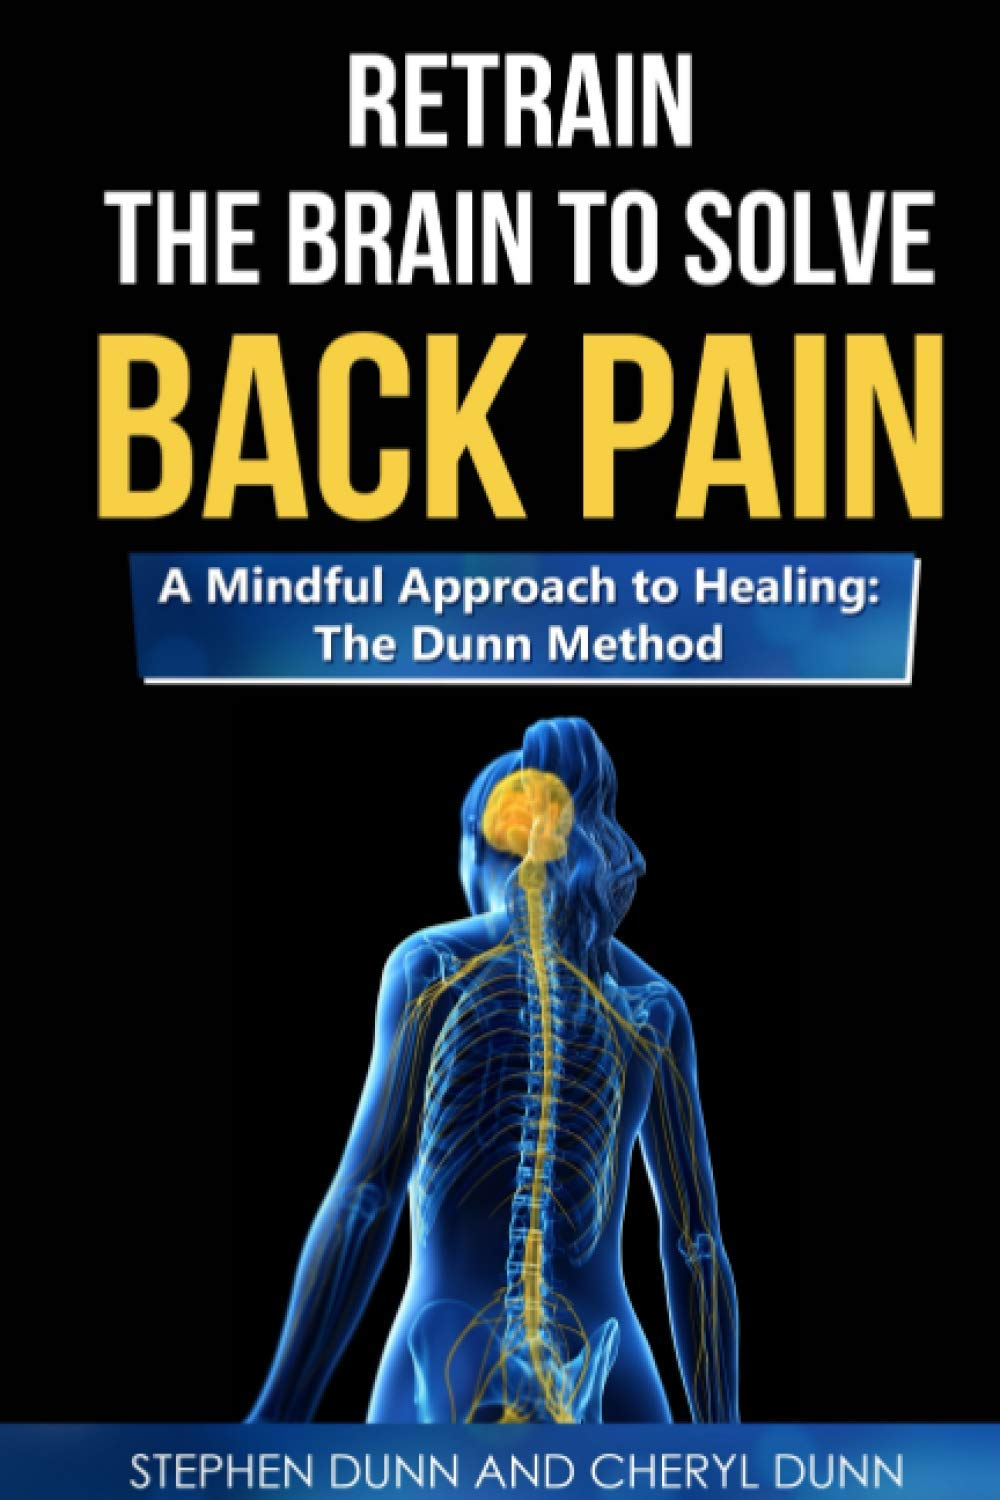 Retrain The Brain To Solve Back Pain. A Mindful Approach to Healing